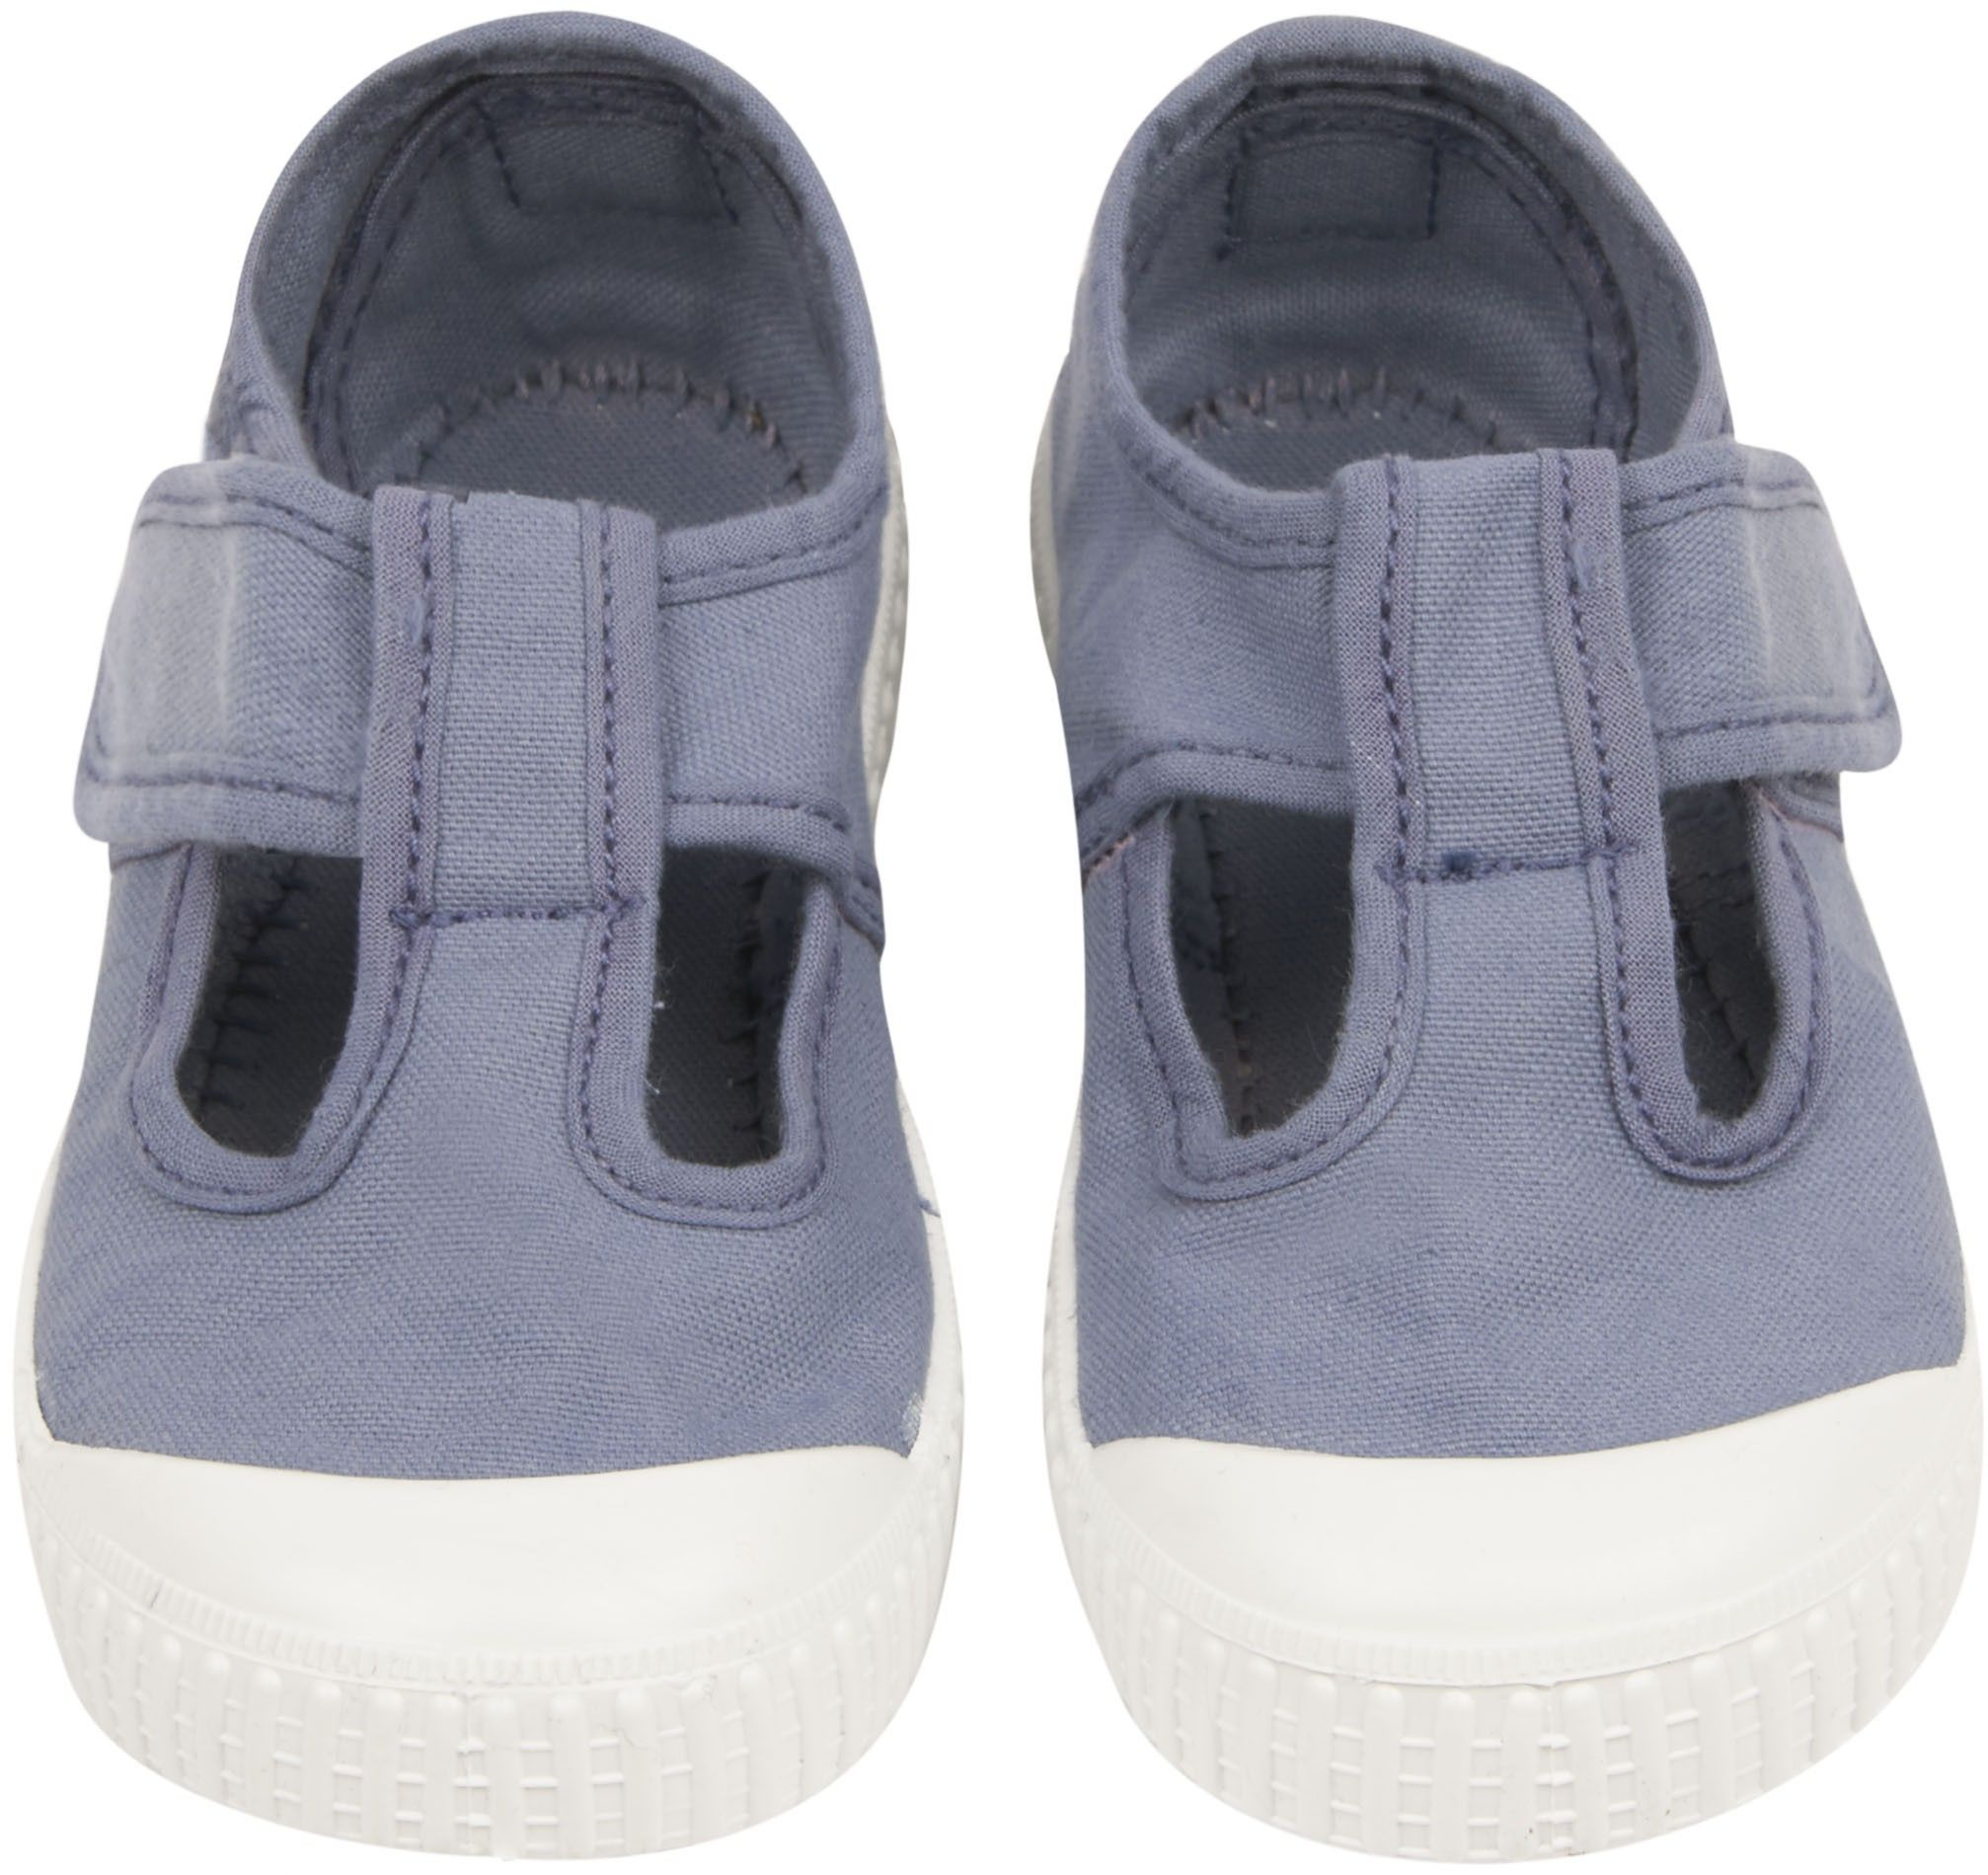 Shop The Victoria Girls T Bar Plimsoles In Blue At Elias & Grace